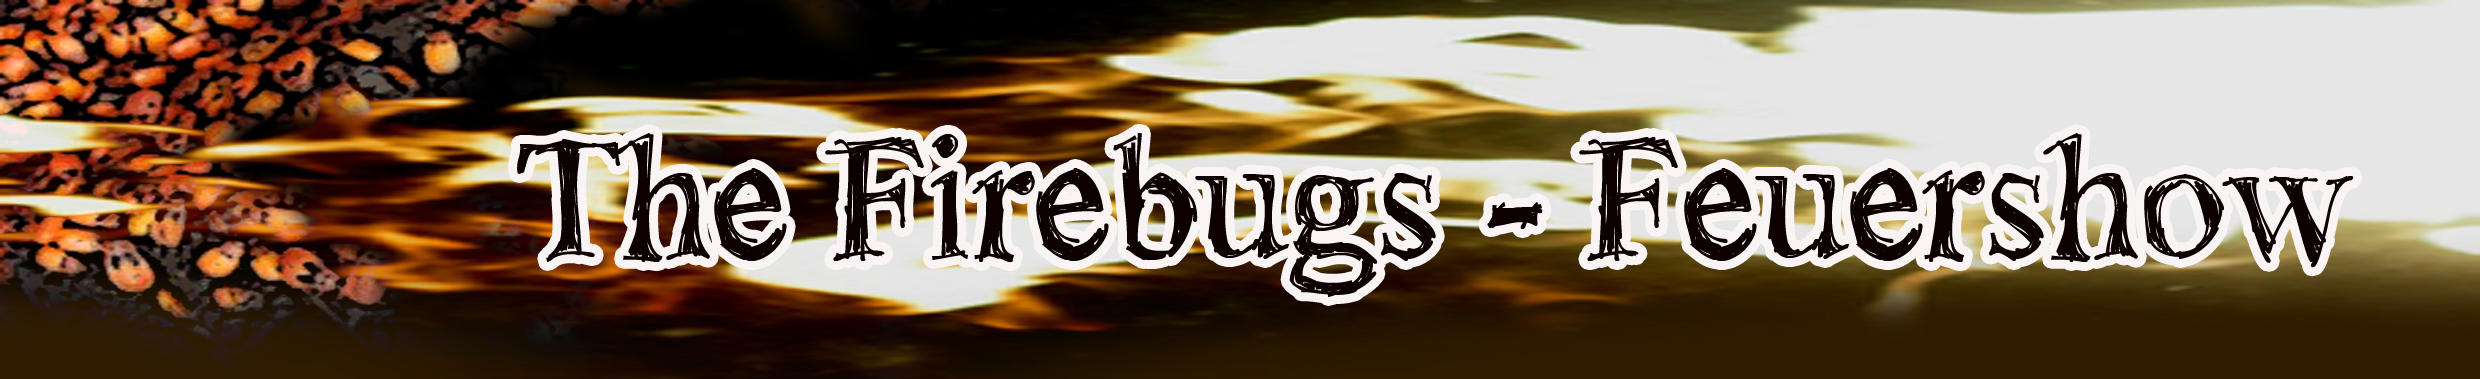 The Firebugs Logo